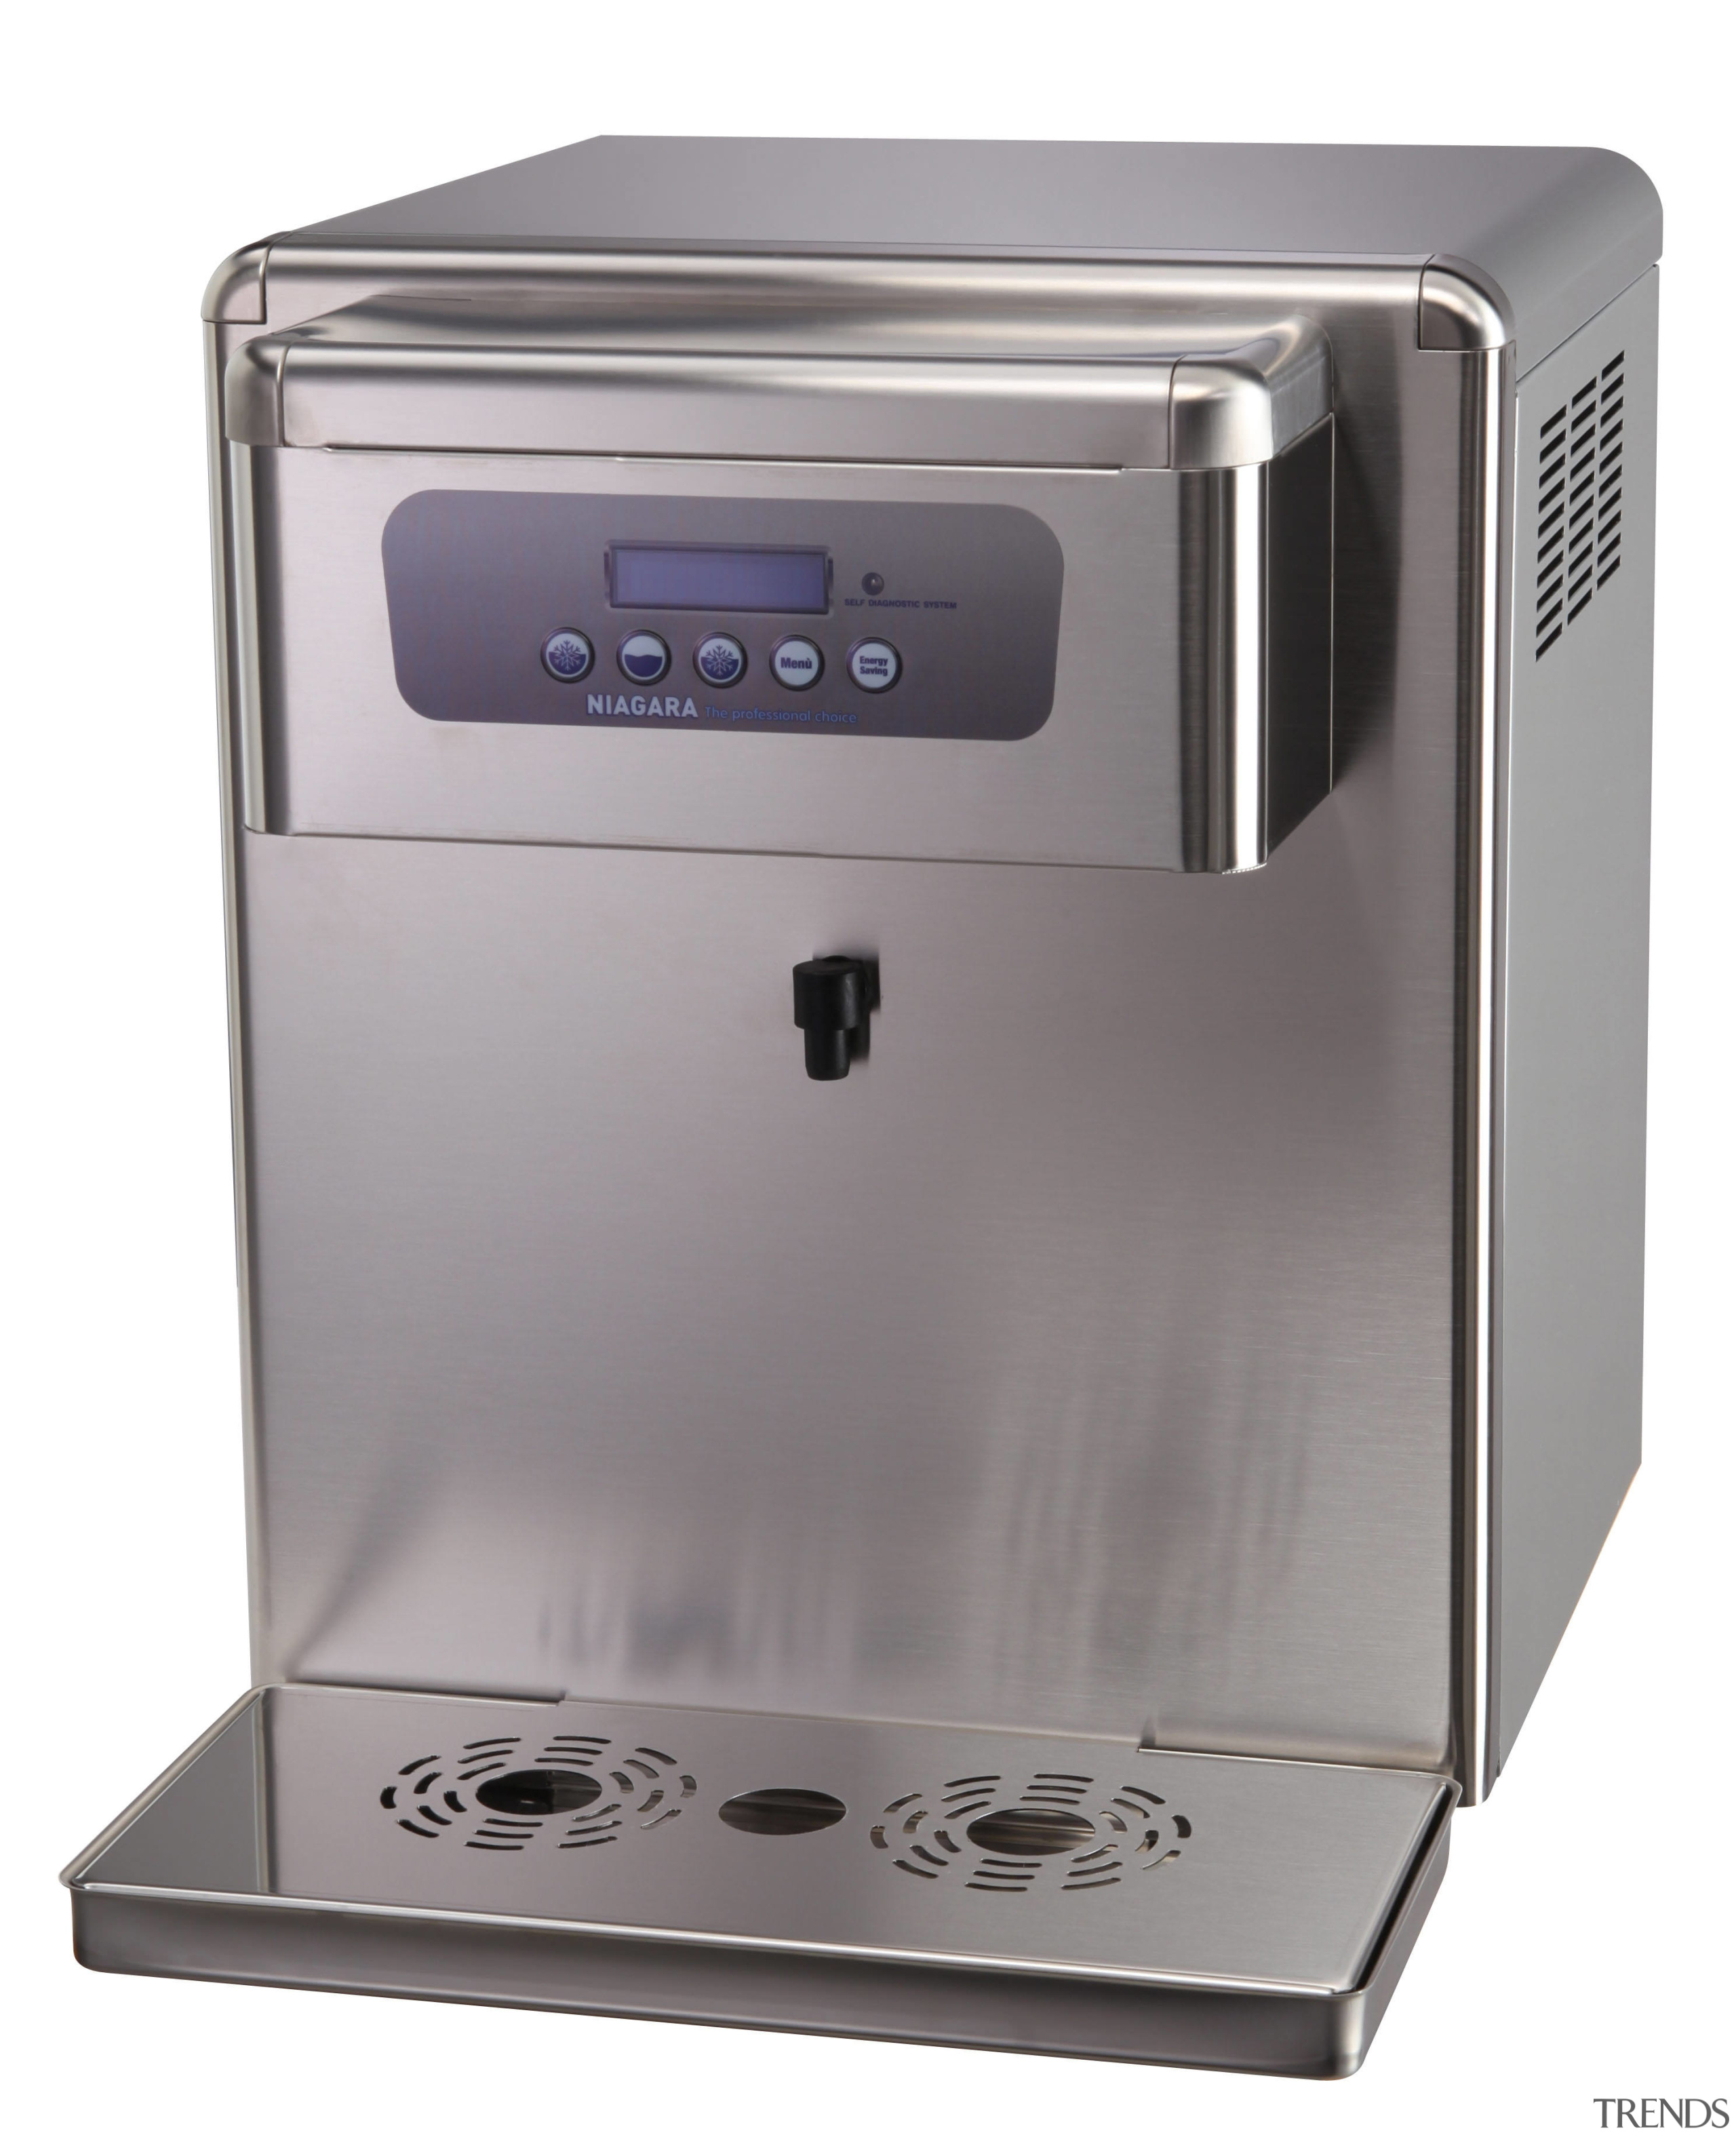 All Cosmetal products from Merquip offer the optional coffeemaker, home appliance, kitchen appliance, product, product design, small appliance, gray, white